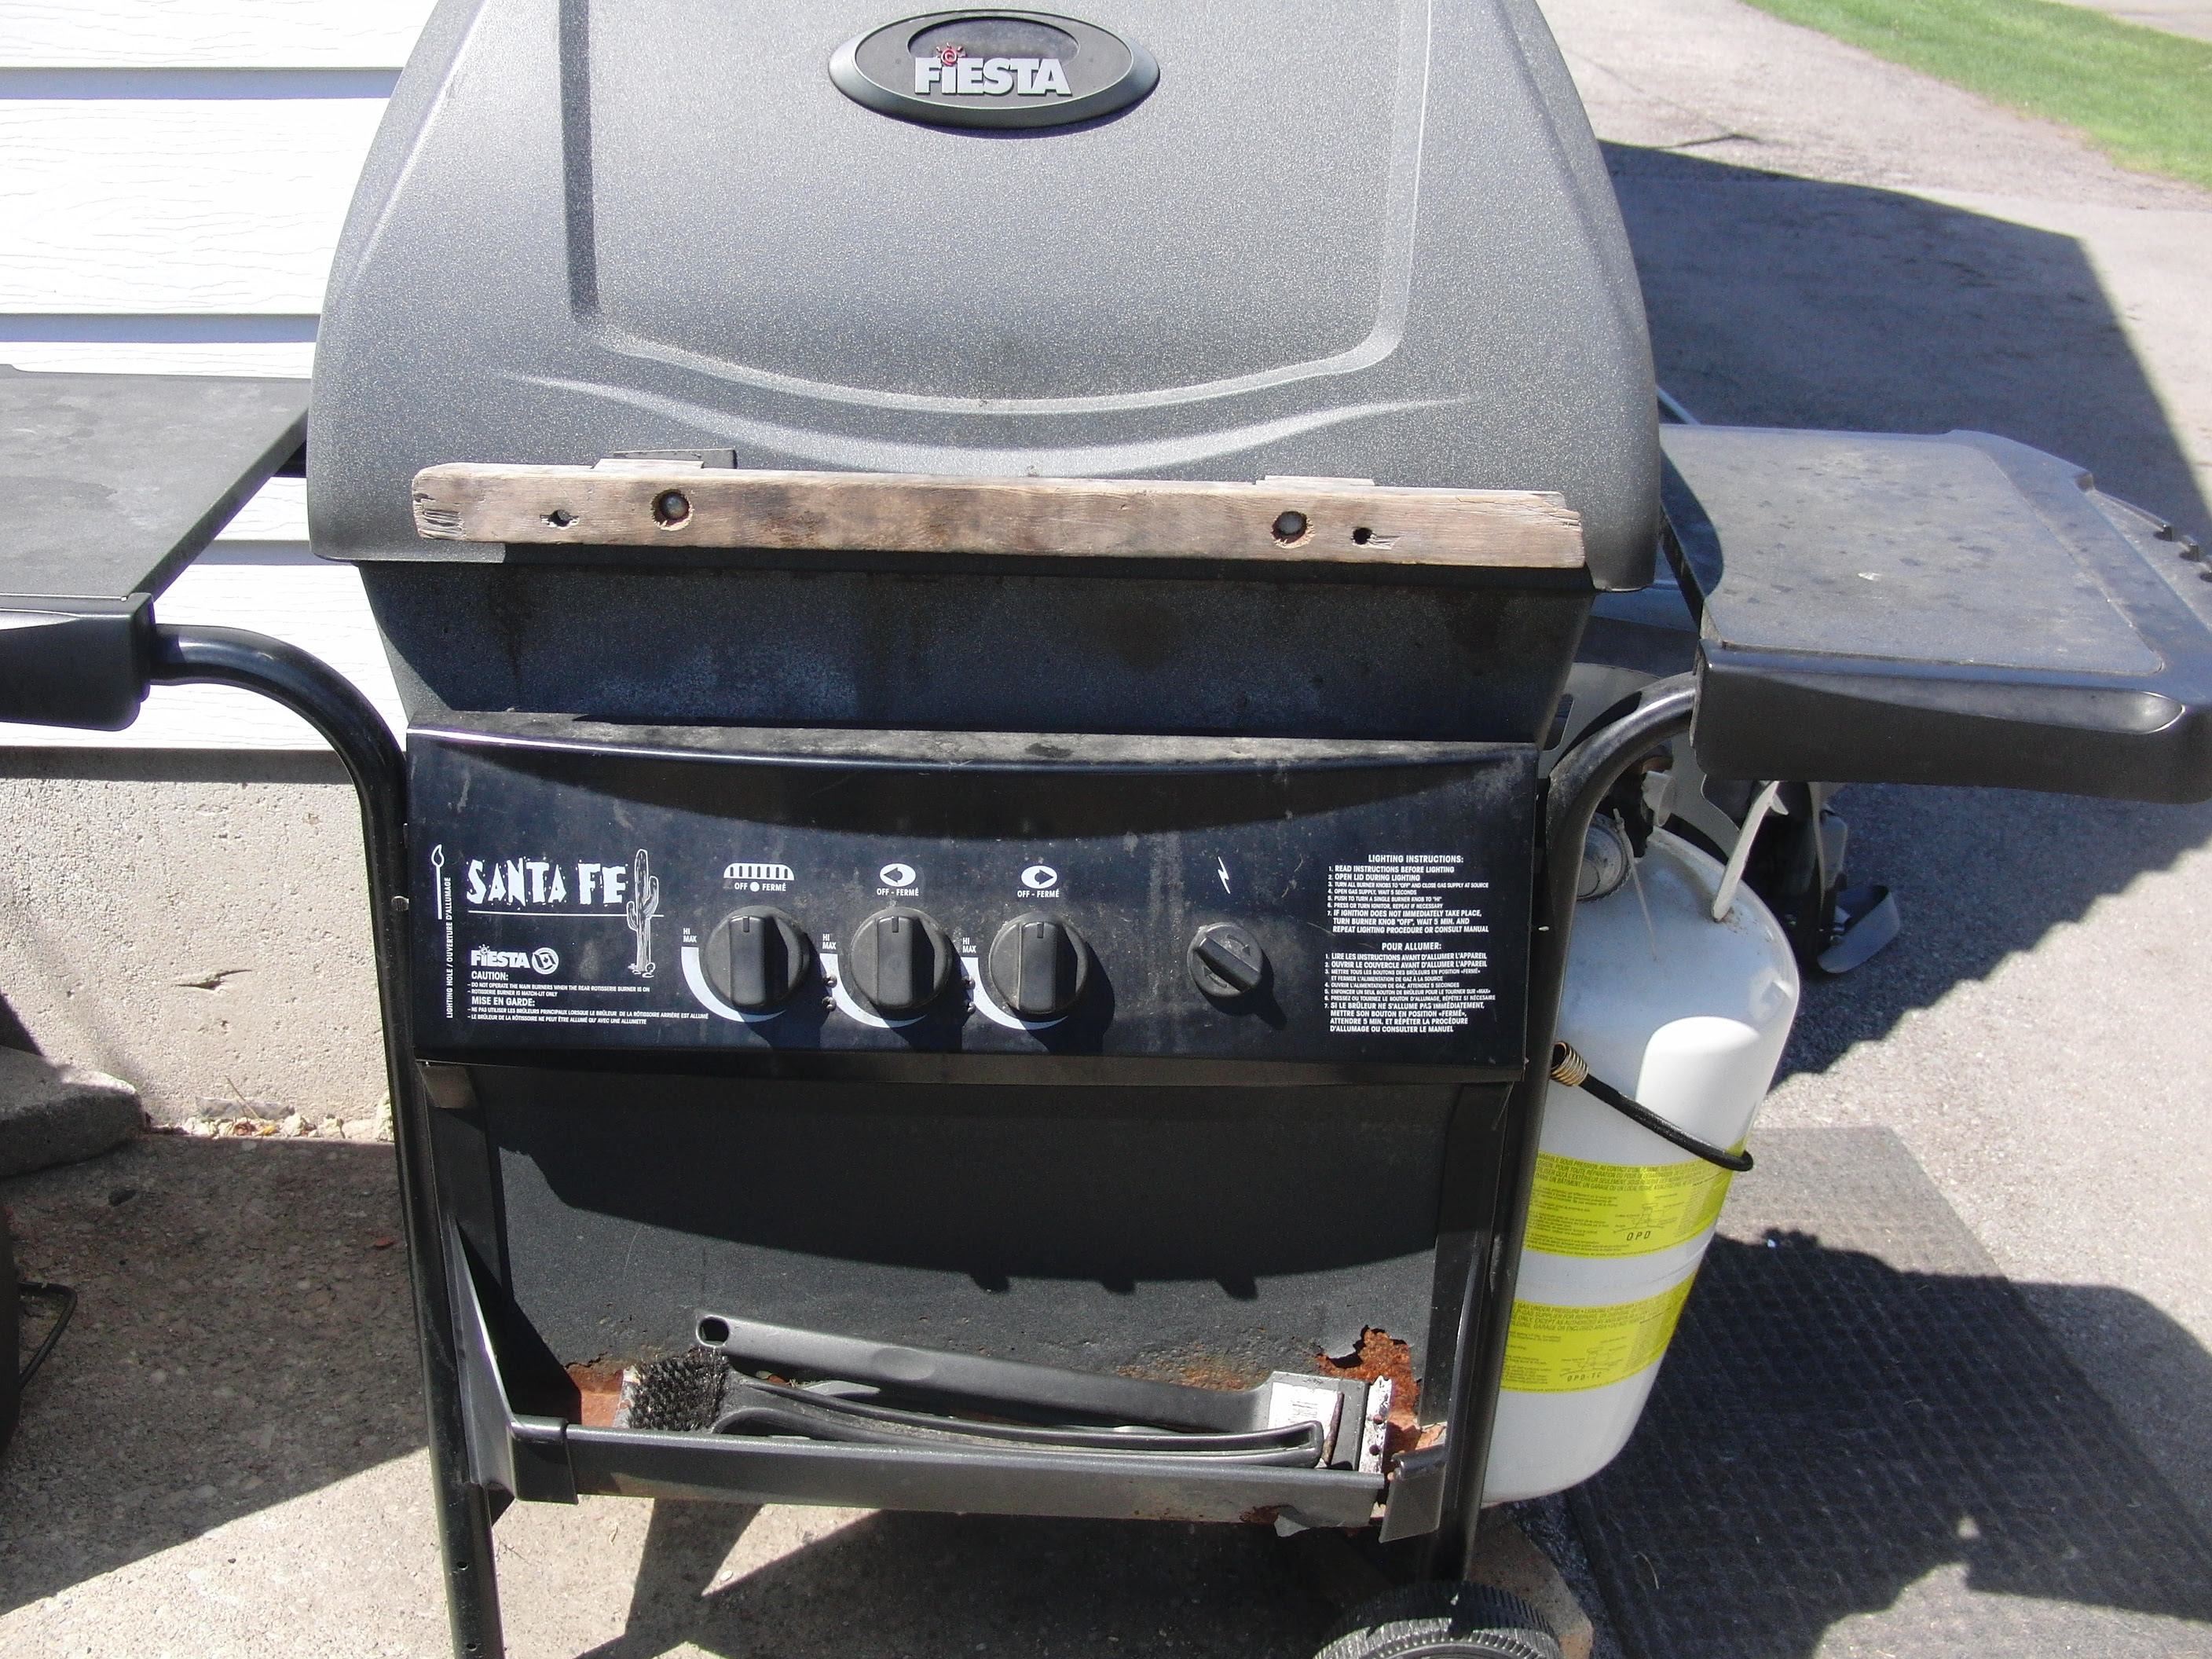 Working on a possible relationship with Grill Parts Canada Wilfred